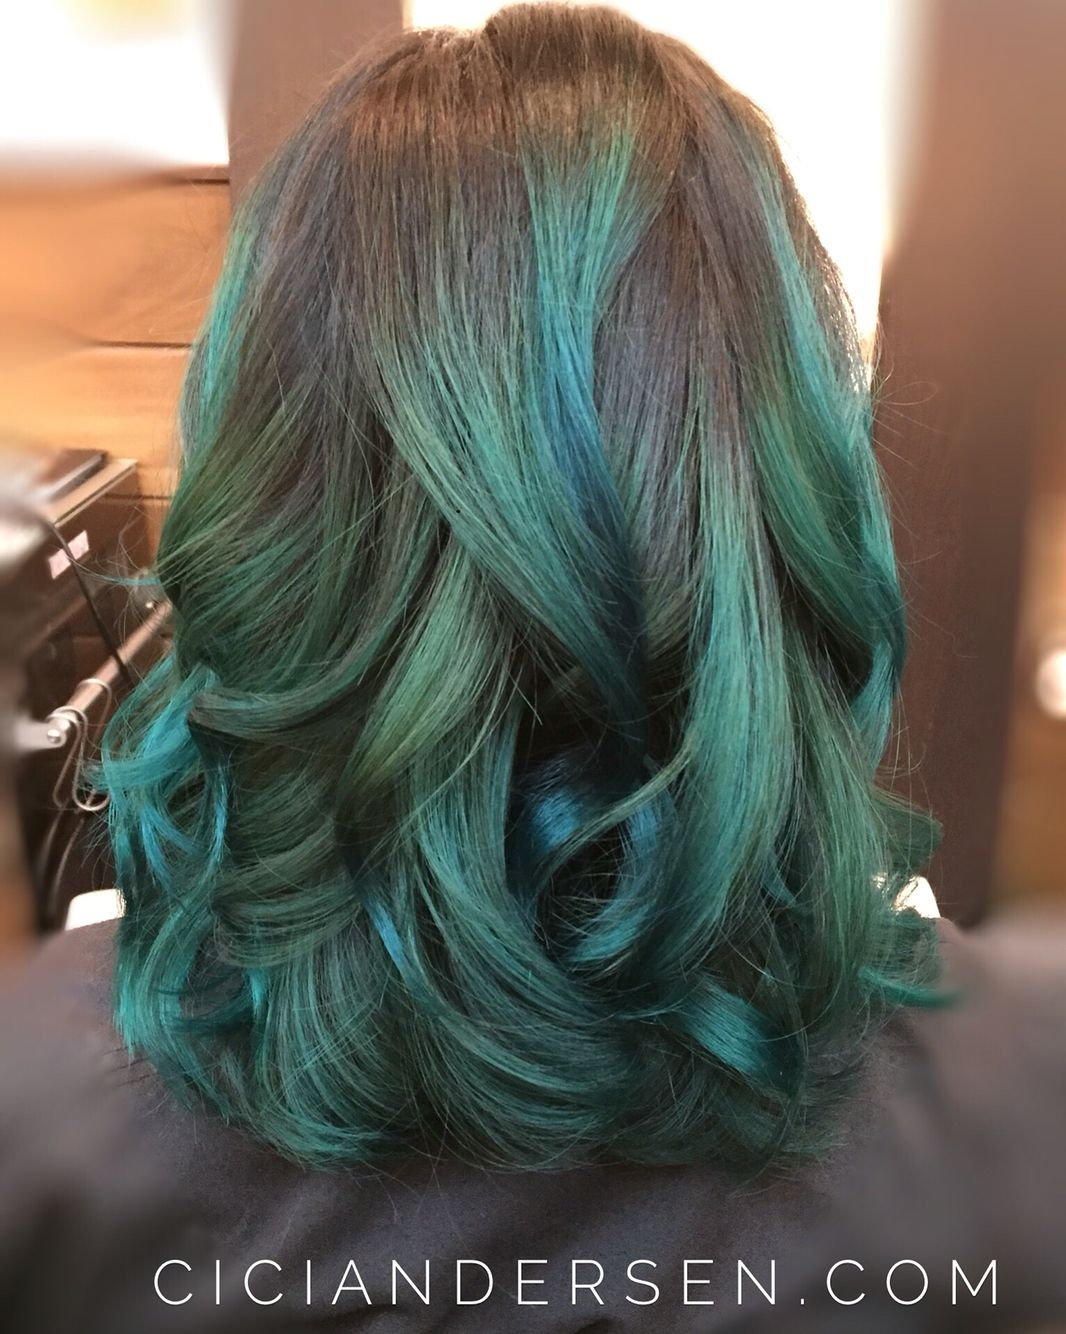 Emerald green balayage d ombré hair by cici andersen at crowning